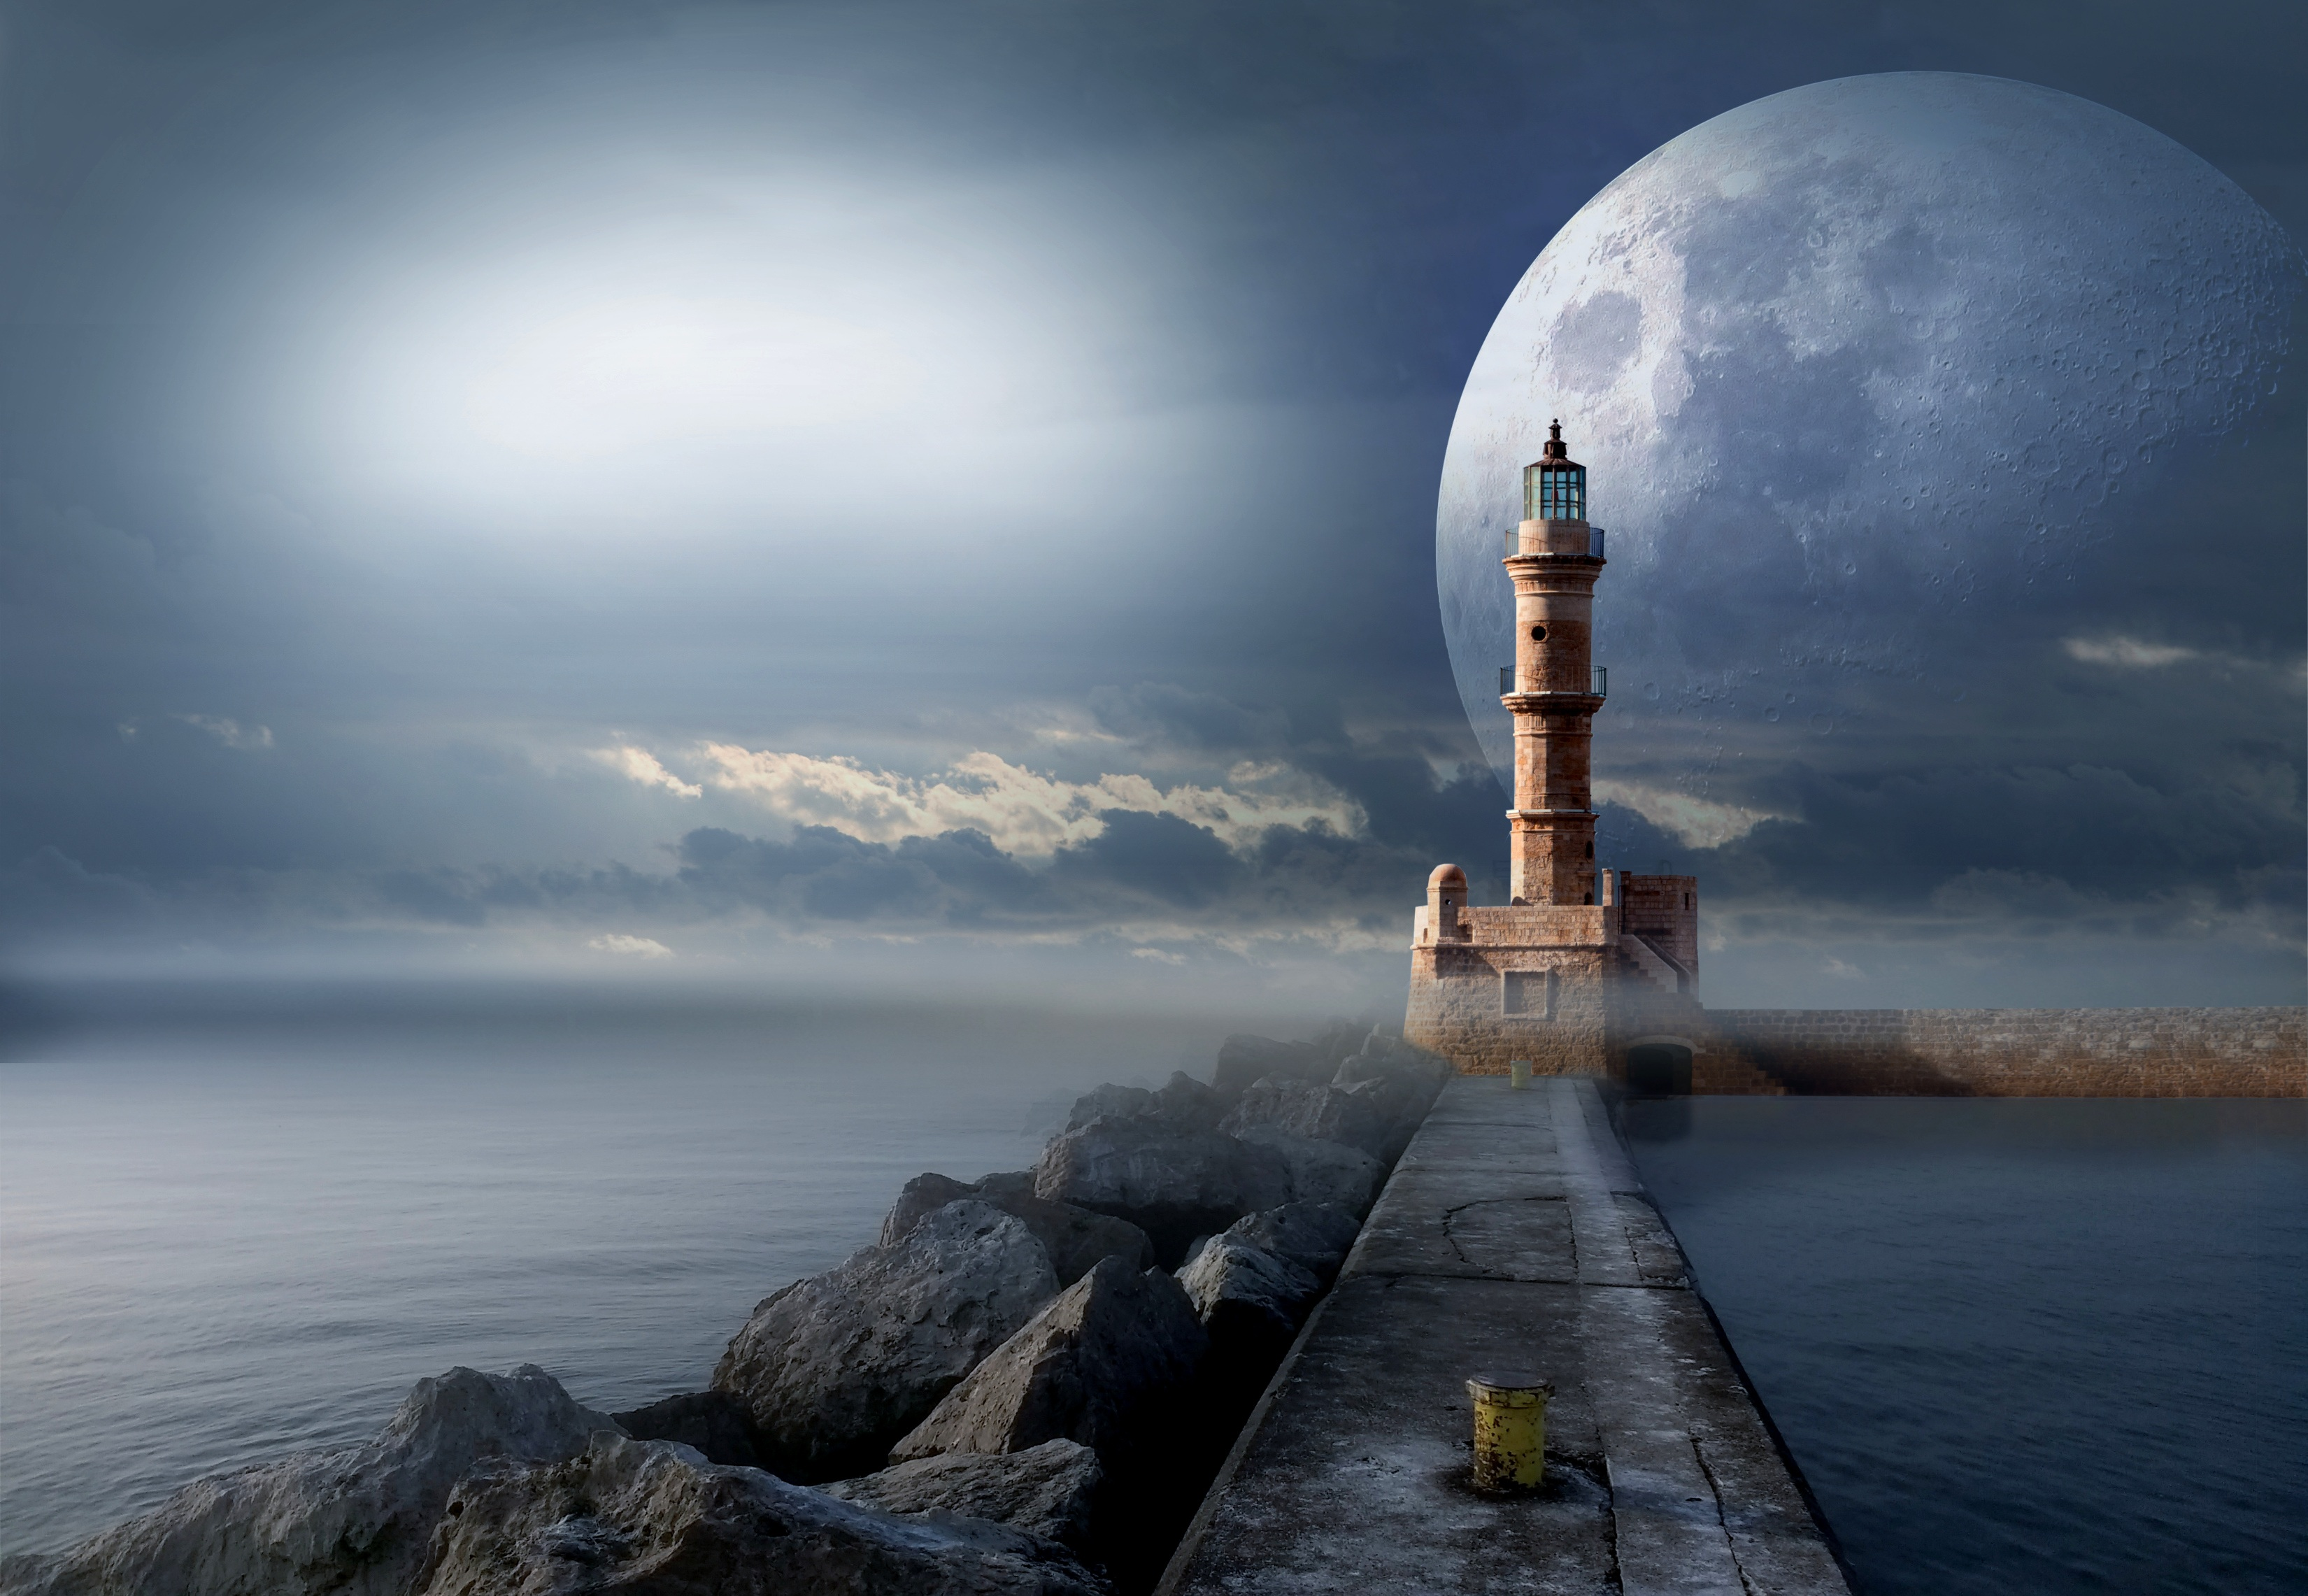 122517 download wallpaper Fantasy, Lighthouse, Moon, Pier, Sea screensavers and pictures for free